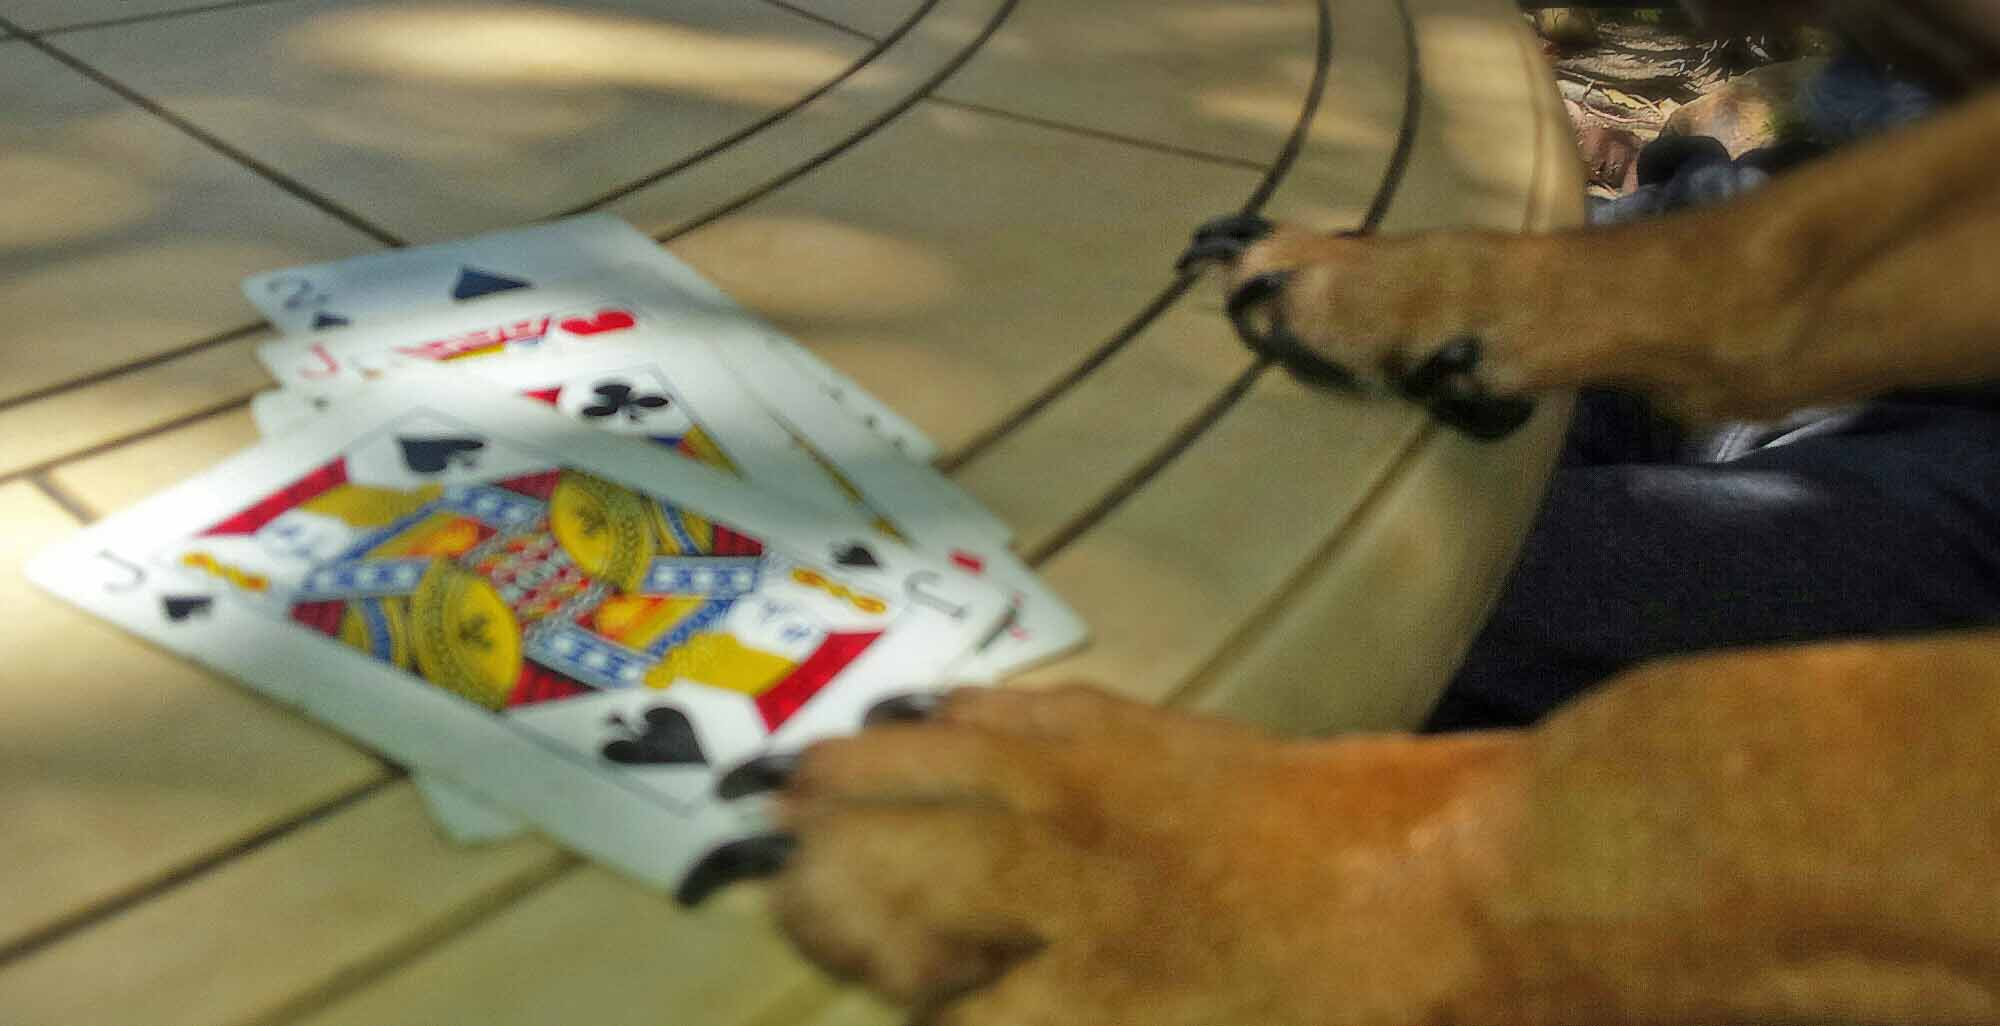 Doodle, top dog, of the Ayers family card game.       Photo: (c) Barb Ayers, DogDiary.org